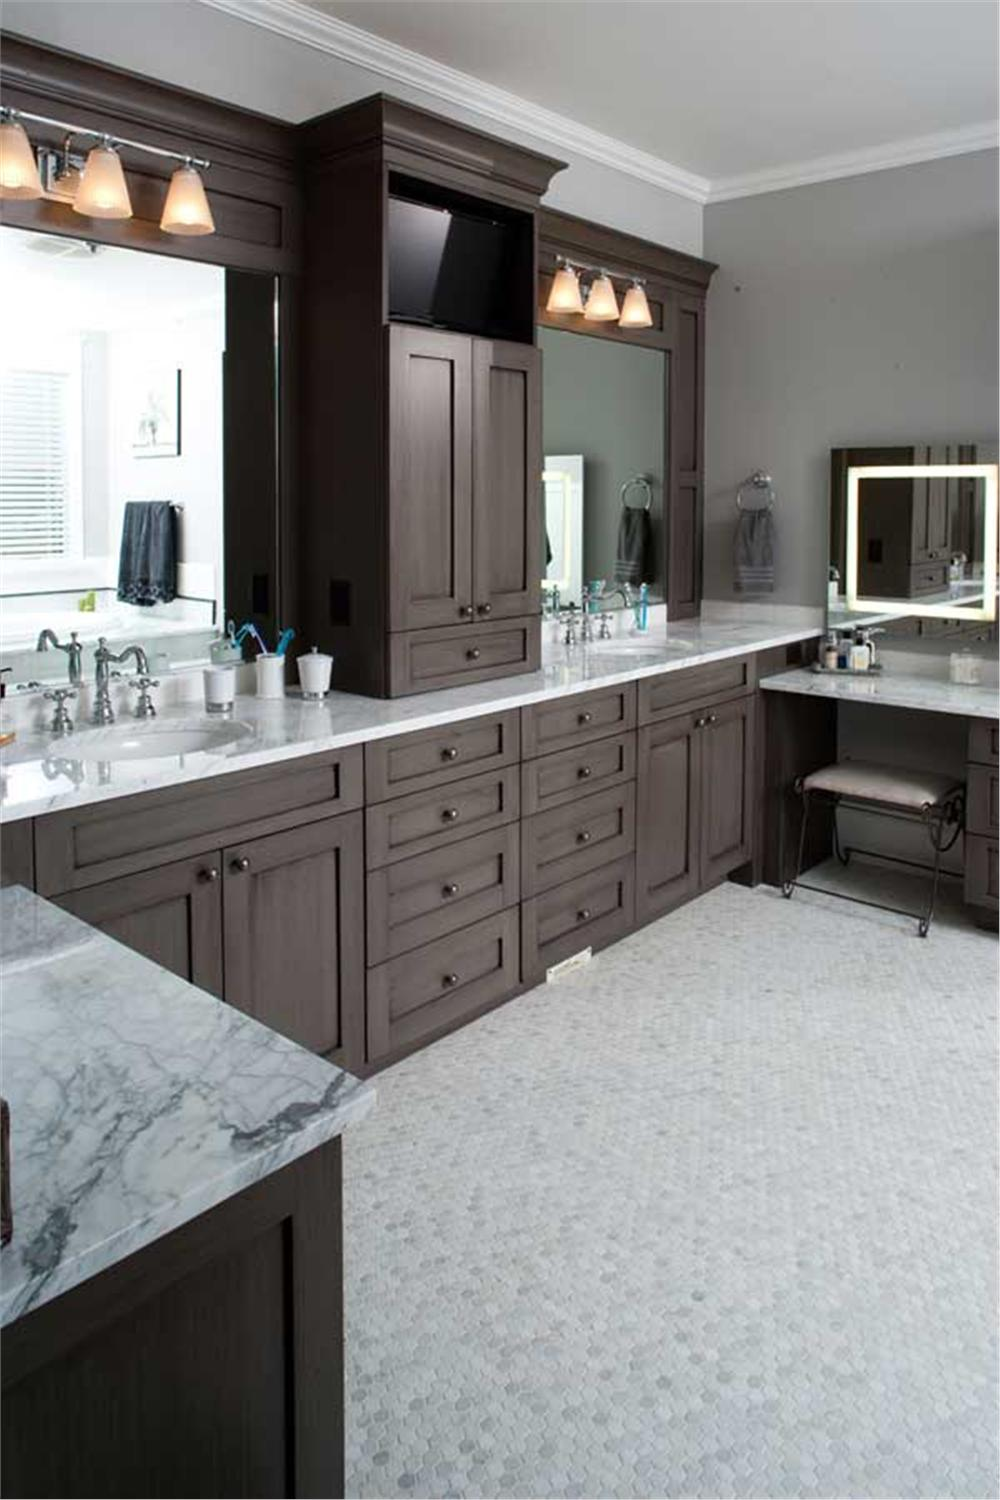 Peachy Two Vanity Bathrooms Practical Solution To A Shared Space Interior Design Ideas Skatsoteloinfo